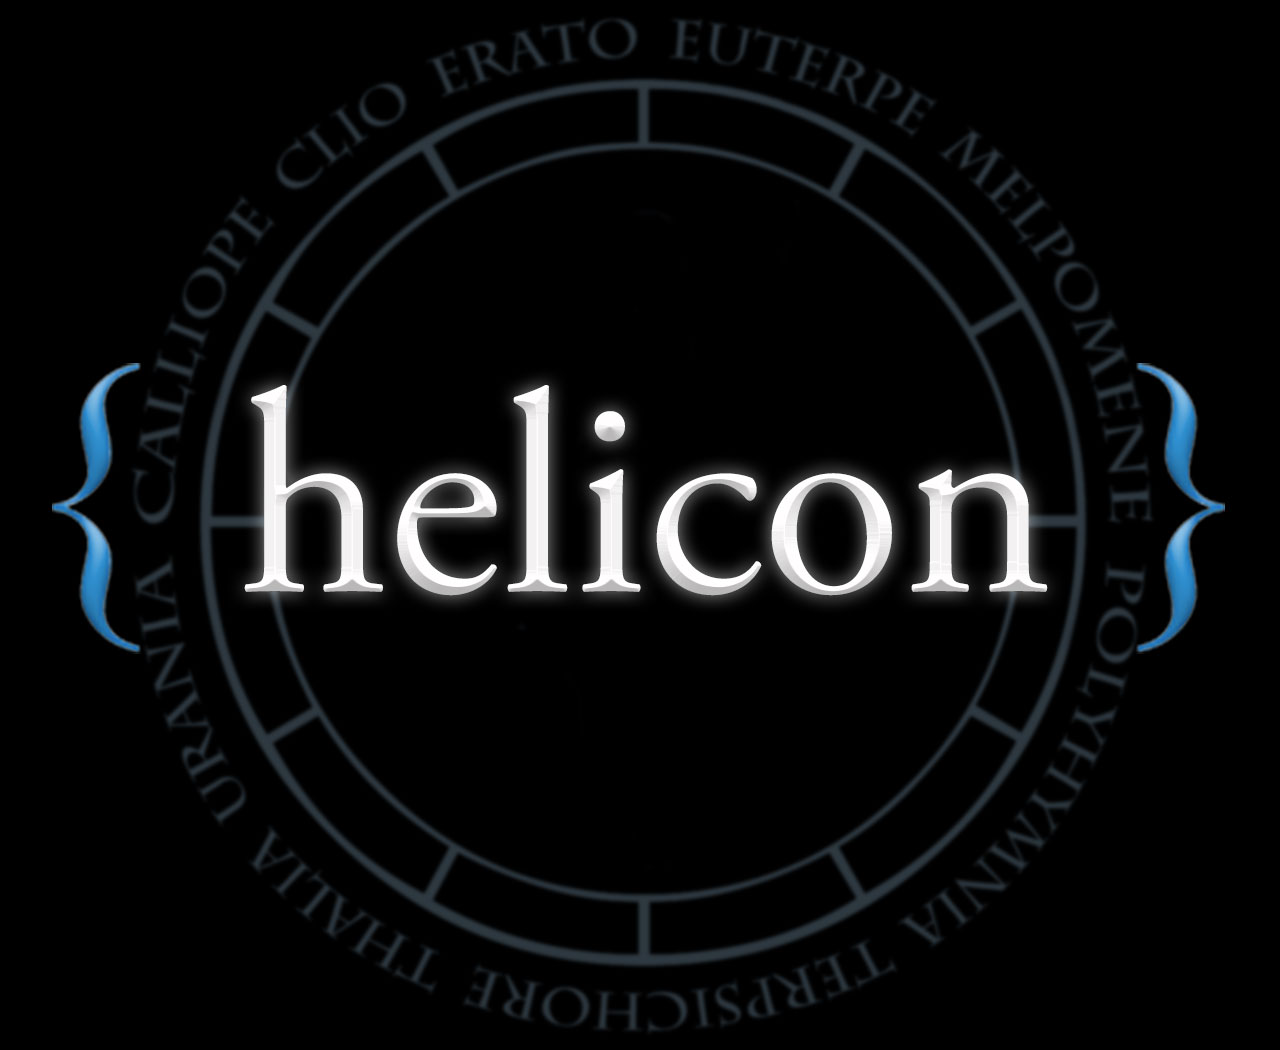 Helicon: Intelligent Cinema